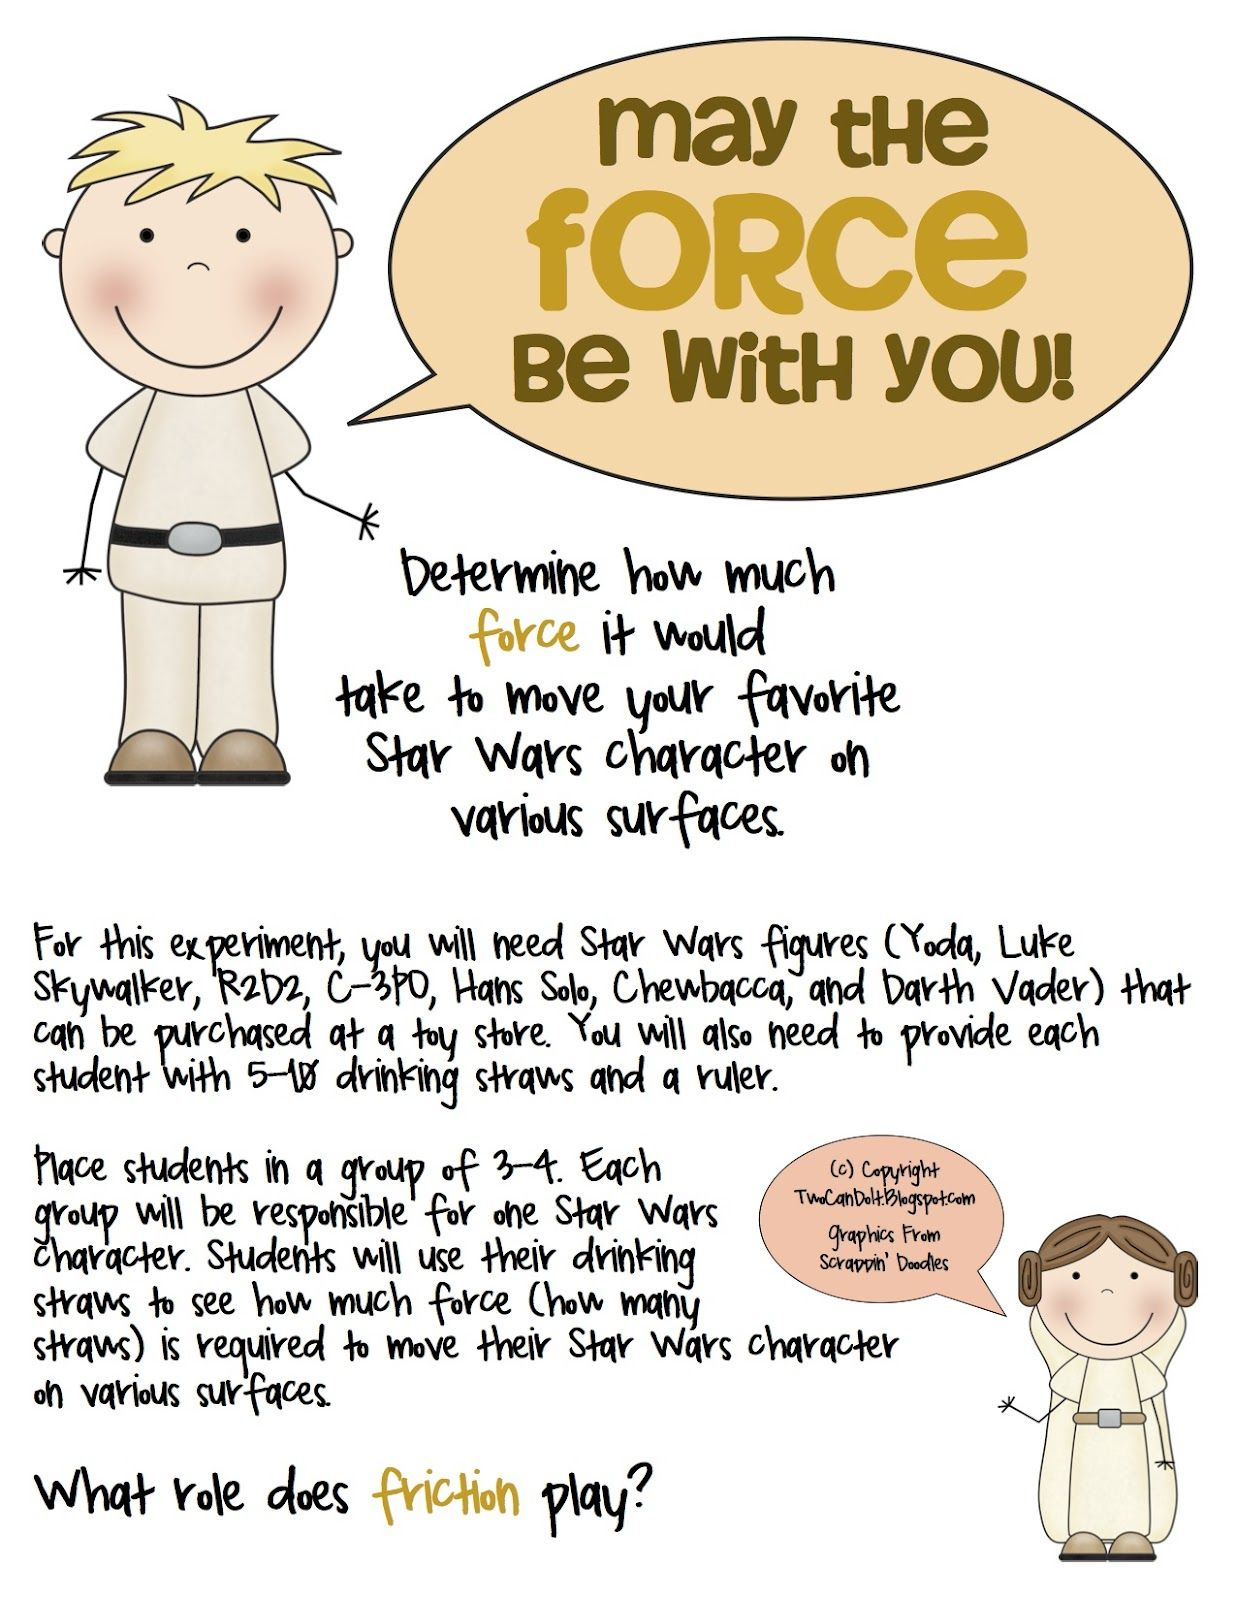 Forces And Friction Star Wars Edition